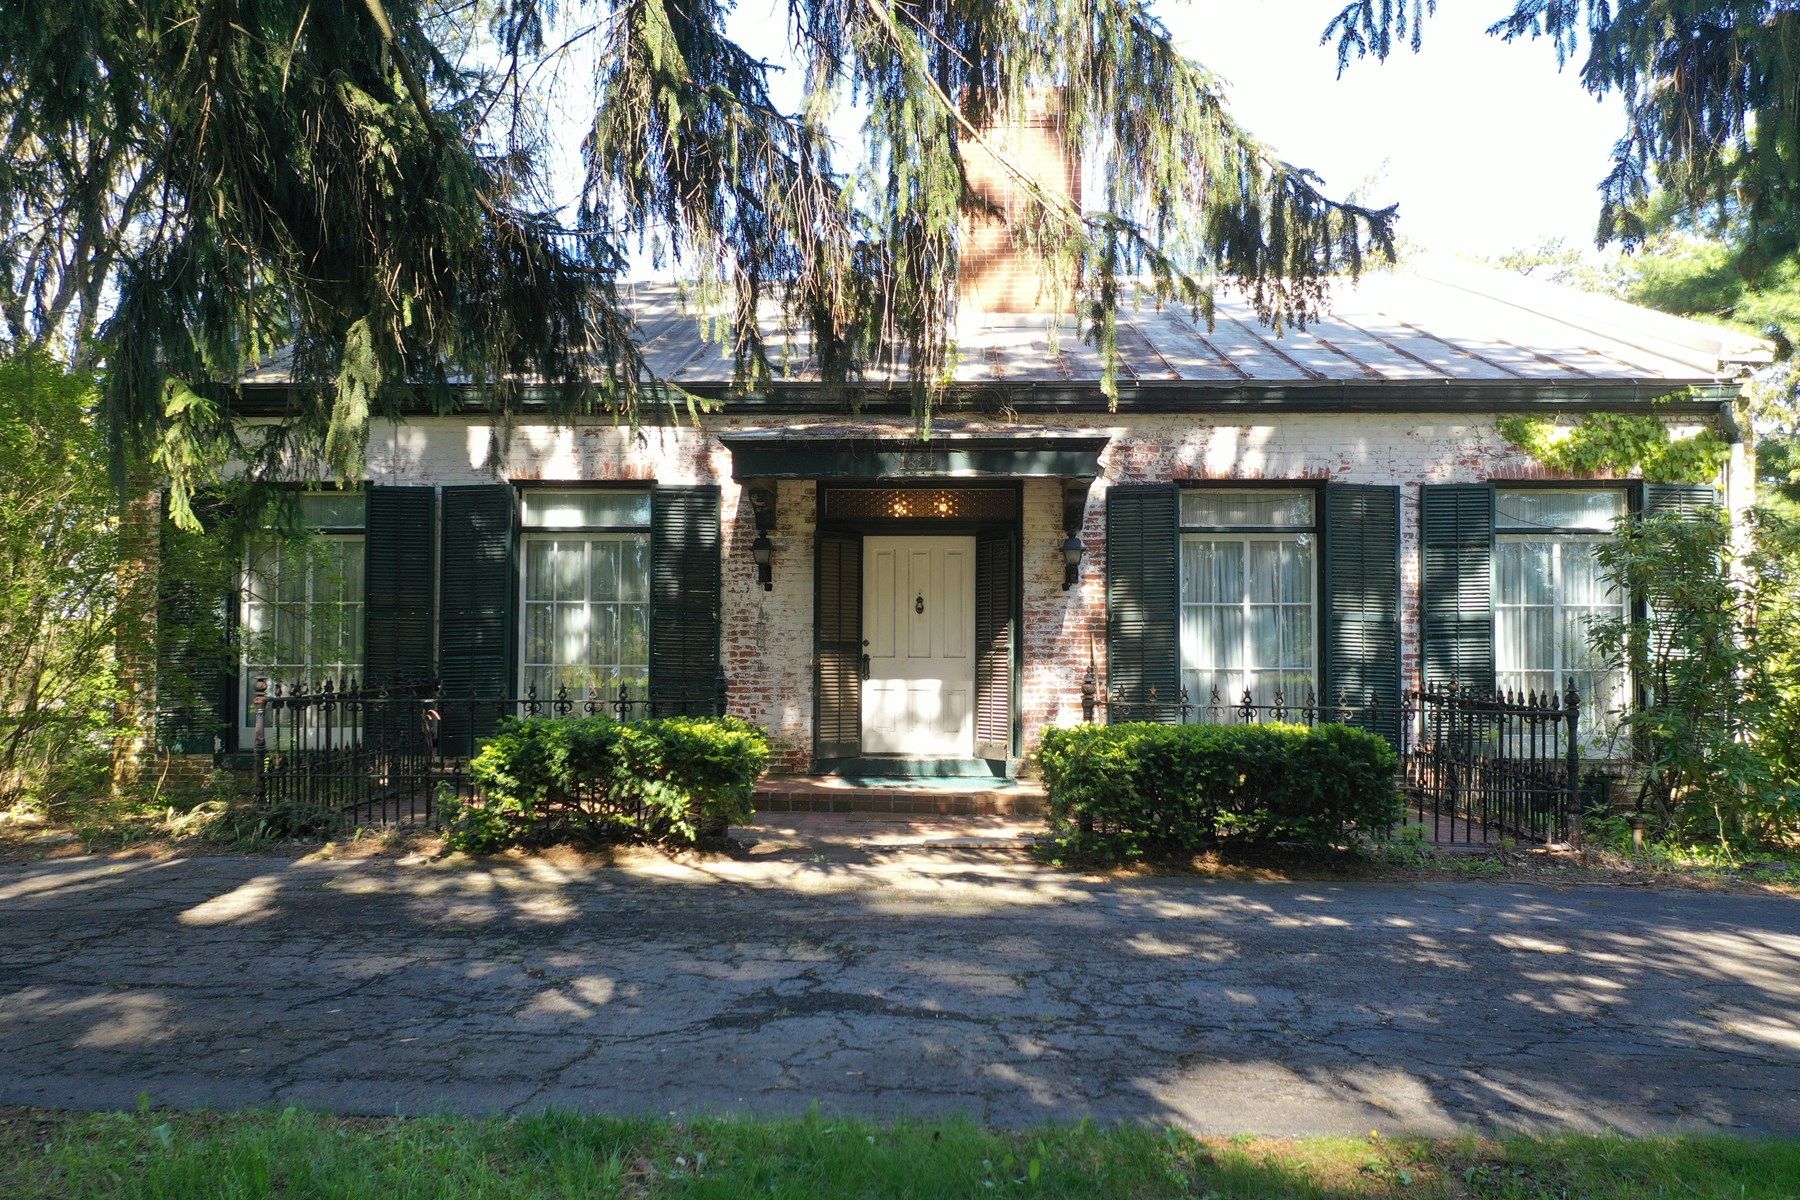 HISTORICAL HOME FOR SALE IN TIFFIN OHIO